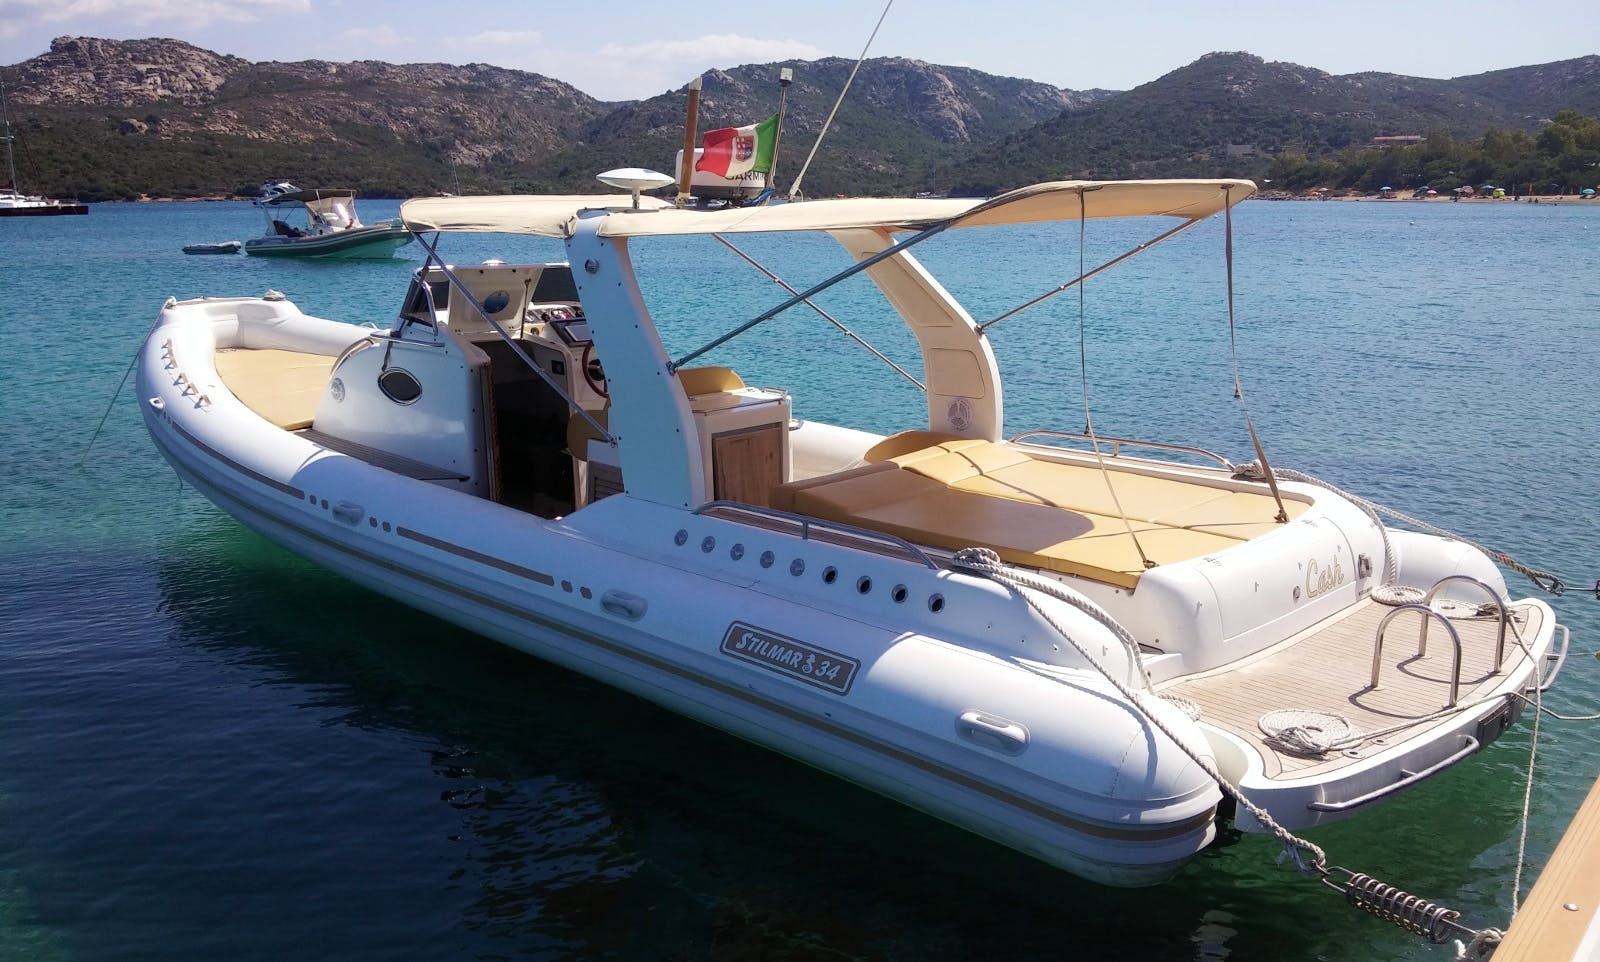 Stilmar F34 Rigid Inflatable Boat with Skipper in Salerno